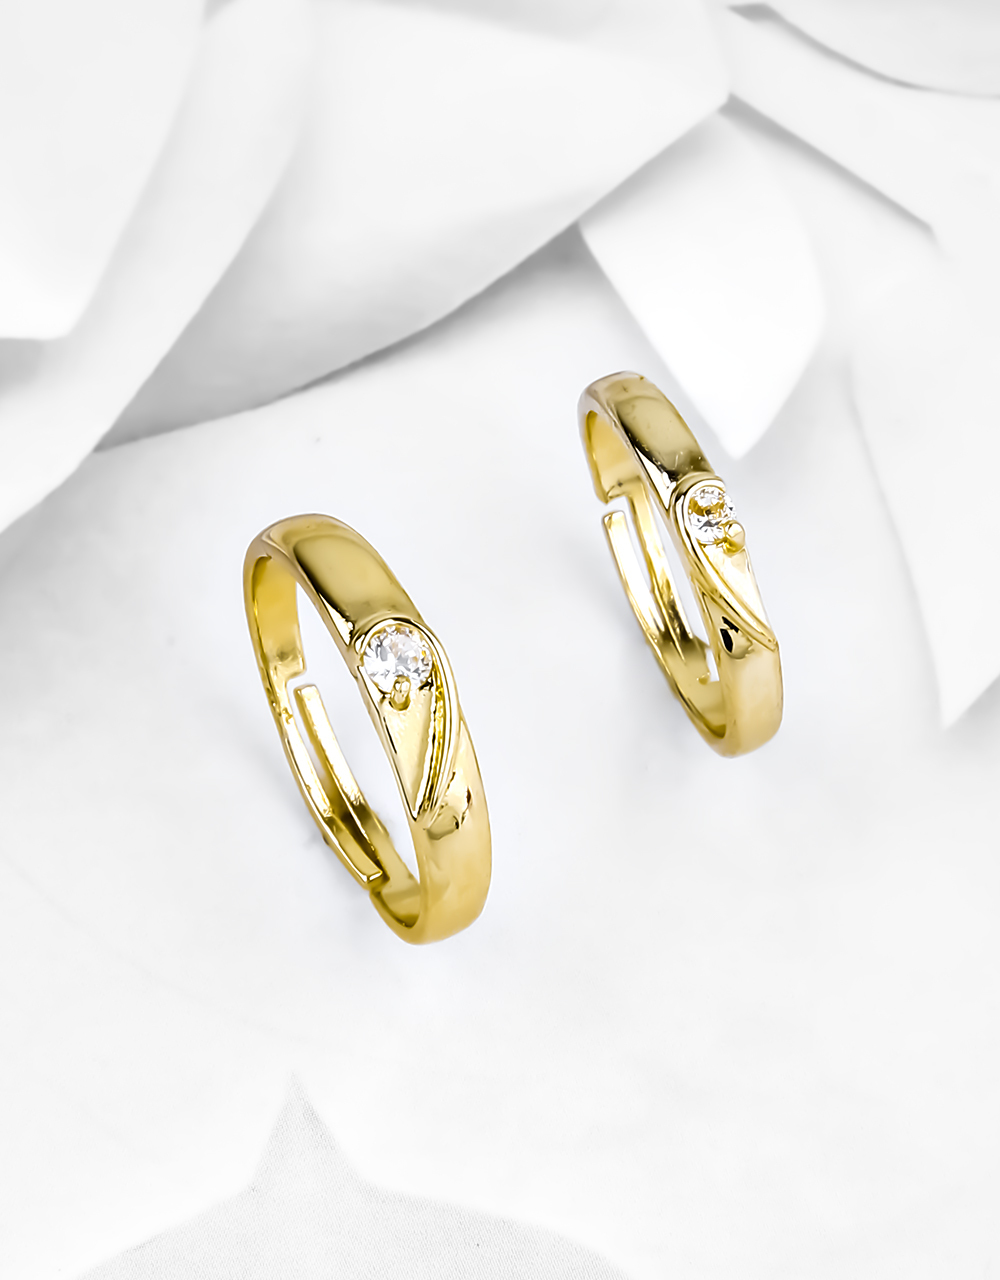 Designer Gold Finish Adorable Couple Rings